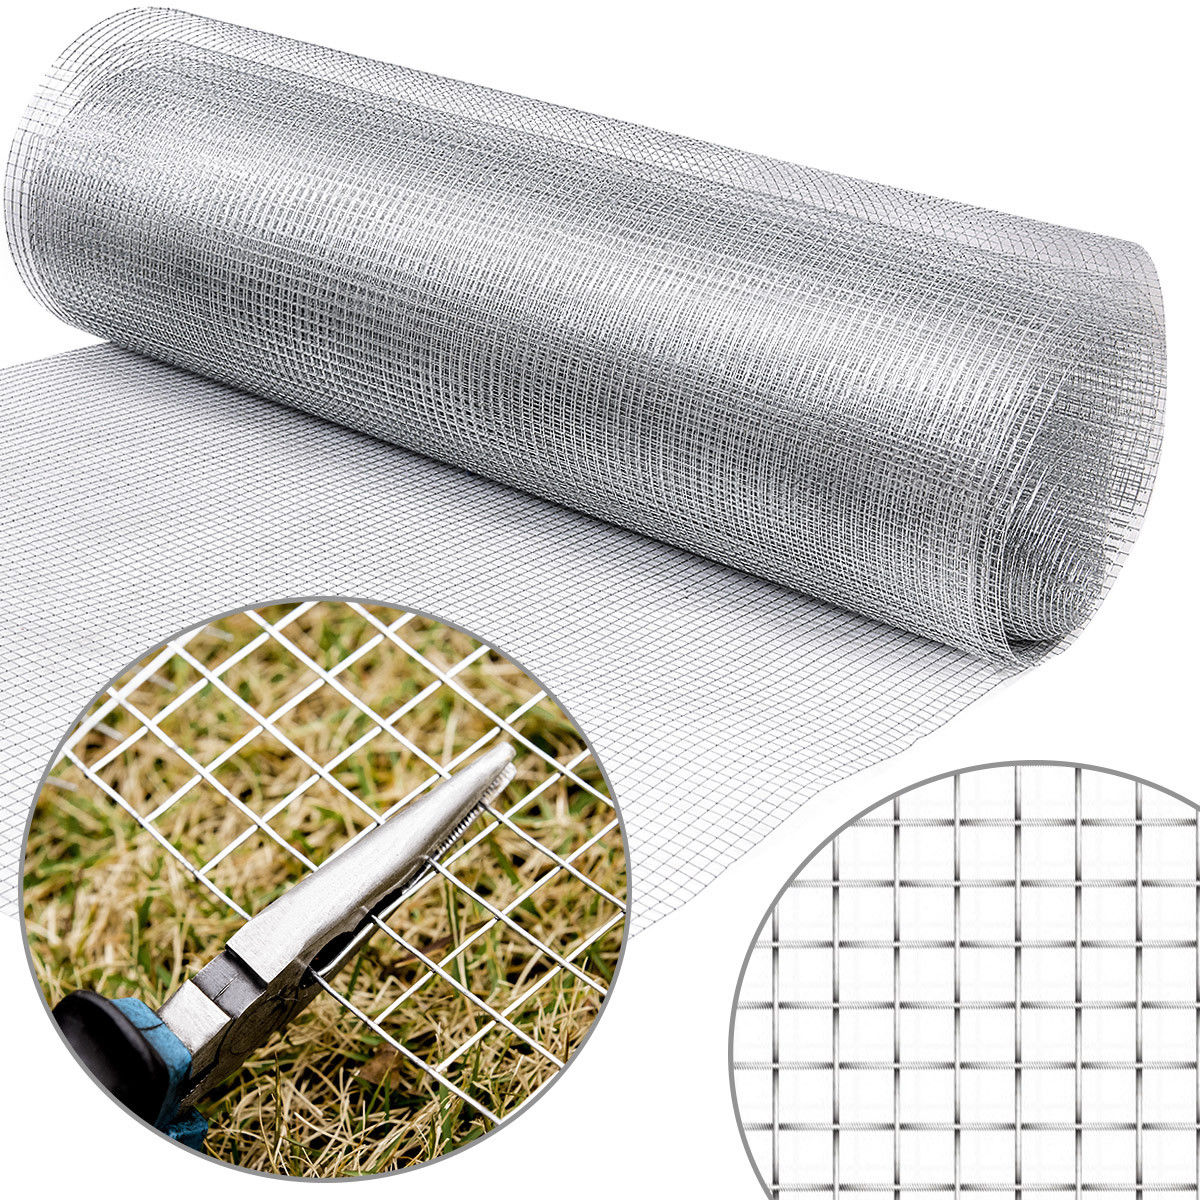 Costway: Costway 36\'\' x 50\' 1/2inch Wire Fence Mesh Cage Roll Garden ...